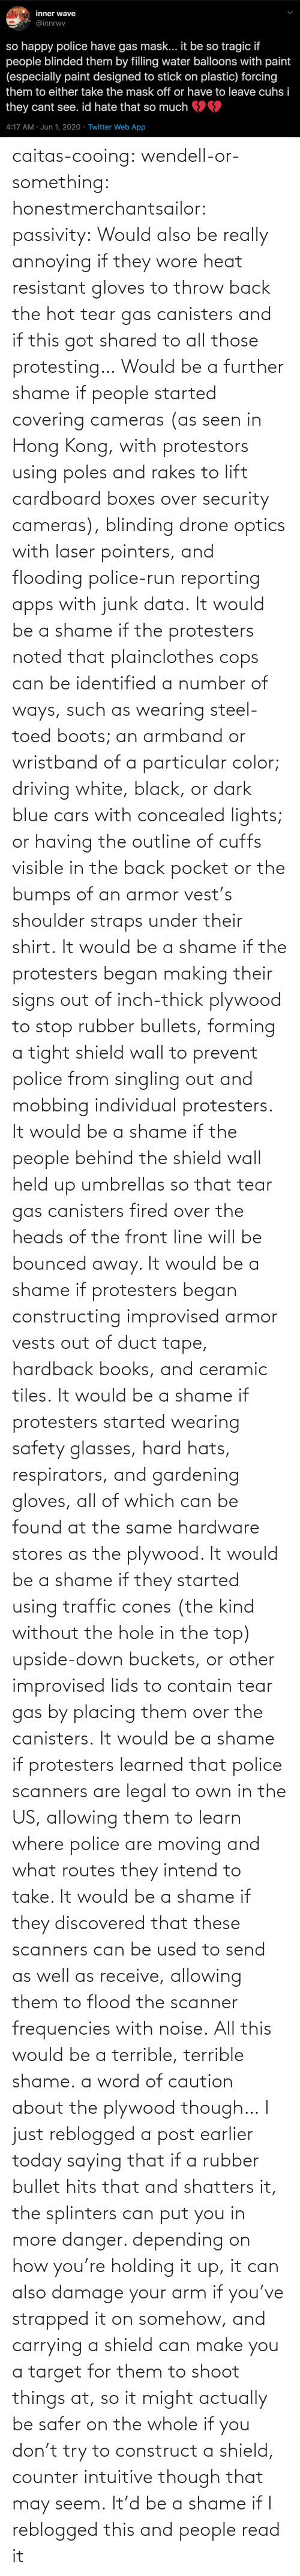 shame: caitas-cooing:  wendell-or-something: honestmerchantsailor:  passivity: Would also be really annoying if they wore heat resistant gloves to throw back the hot tear gas canisters and if this got shared to all those protesting… Would be a further shame if people started covering cameras (as seen in Hong Kong, with protestors using poles and rakes to lift cardboard boxes over security cameras), blinding drone optics with laser pointers, and flooding police-run reporting apps with junk data. It would be a shame if the protesters noted that plainclothes cops can be identified a number of ways, such as wearing steel-toed boots; an armband or wristband of a particular color; driving white, black, or dark blue cars with concealed lights; or having the outline of cuffs visible in the back pocket or the bumps of an armor vest's shoulder straps under their shirt. It would be a shame if the protesters began making their signs out of inch-thick plywood to stop rubber bullets, forming a tight shield wall to prevent police from singling out and mobbing individual protesters. It would be a shame if the people behind the shield wall held up umbrellas so that tear gas canisters fired over the heads of the front line will be bounced away. It would be a shame if protesters began constructing improvised armor vests out of duct tape, hardback books, and ceramic tiles. It would be a shame if protesters started wearing safety glasses, hard hats, respirators, and gardening gloves, all of which can be found at the same hardware stores as the plywood. It would be a shame if they started using traffic cones (the kind without the hole in the top) upside-down buckets, or other improvised lids to contain tear gas by placing them over the canisters. It would be a shame if protesters learned that police scanners are legal to own in the US, allowing them to learn where police are moving and what routes they intend to take. It would be a shame if they discovered that these scanners can be used to send as well as receive, allowing them to flood the scanner frequencies with noise. All this would be a terrible, terrible shame.    a word of caution about the plywood though… I just reblogged a post earlier today saying that if a rubber bullet hits that and shatters it, the splinters can put you in more danger. depending on how you're holding it up, it can also damage your arm if you've strapped it on somehow, and carrying a shield can make you a target for them to shoot things at, so it might actually be safer on the whole if you don't try to construct a shield, counter intuitive though that may seem.    It'd be a shame if I reblogged this and people read it